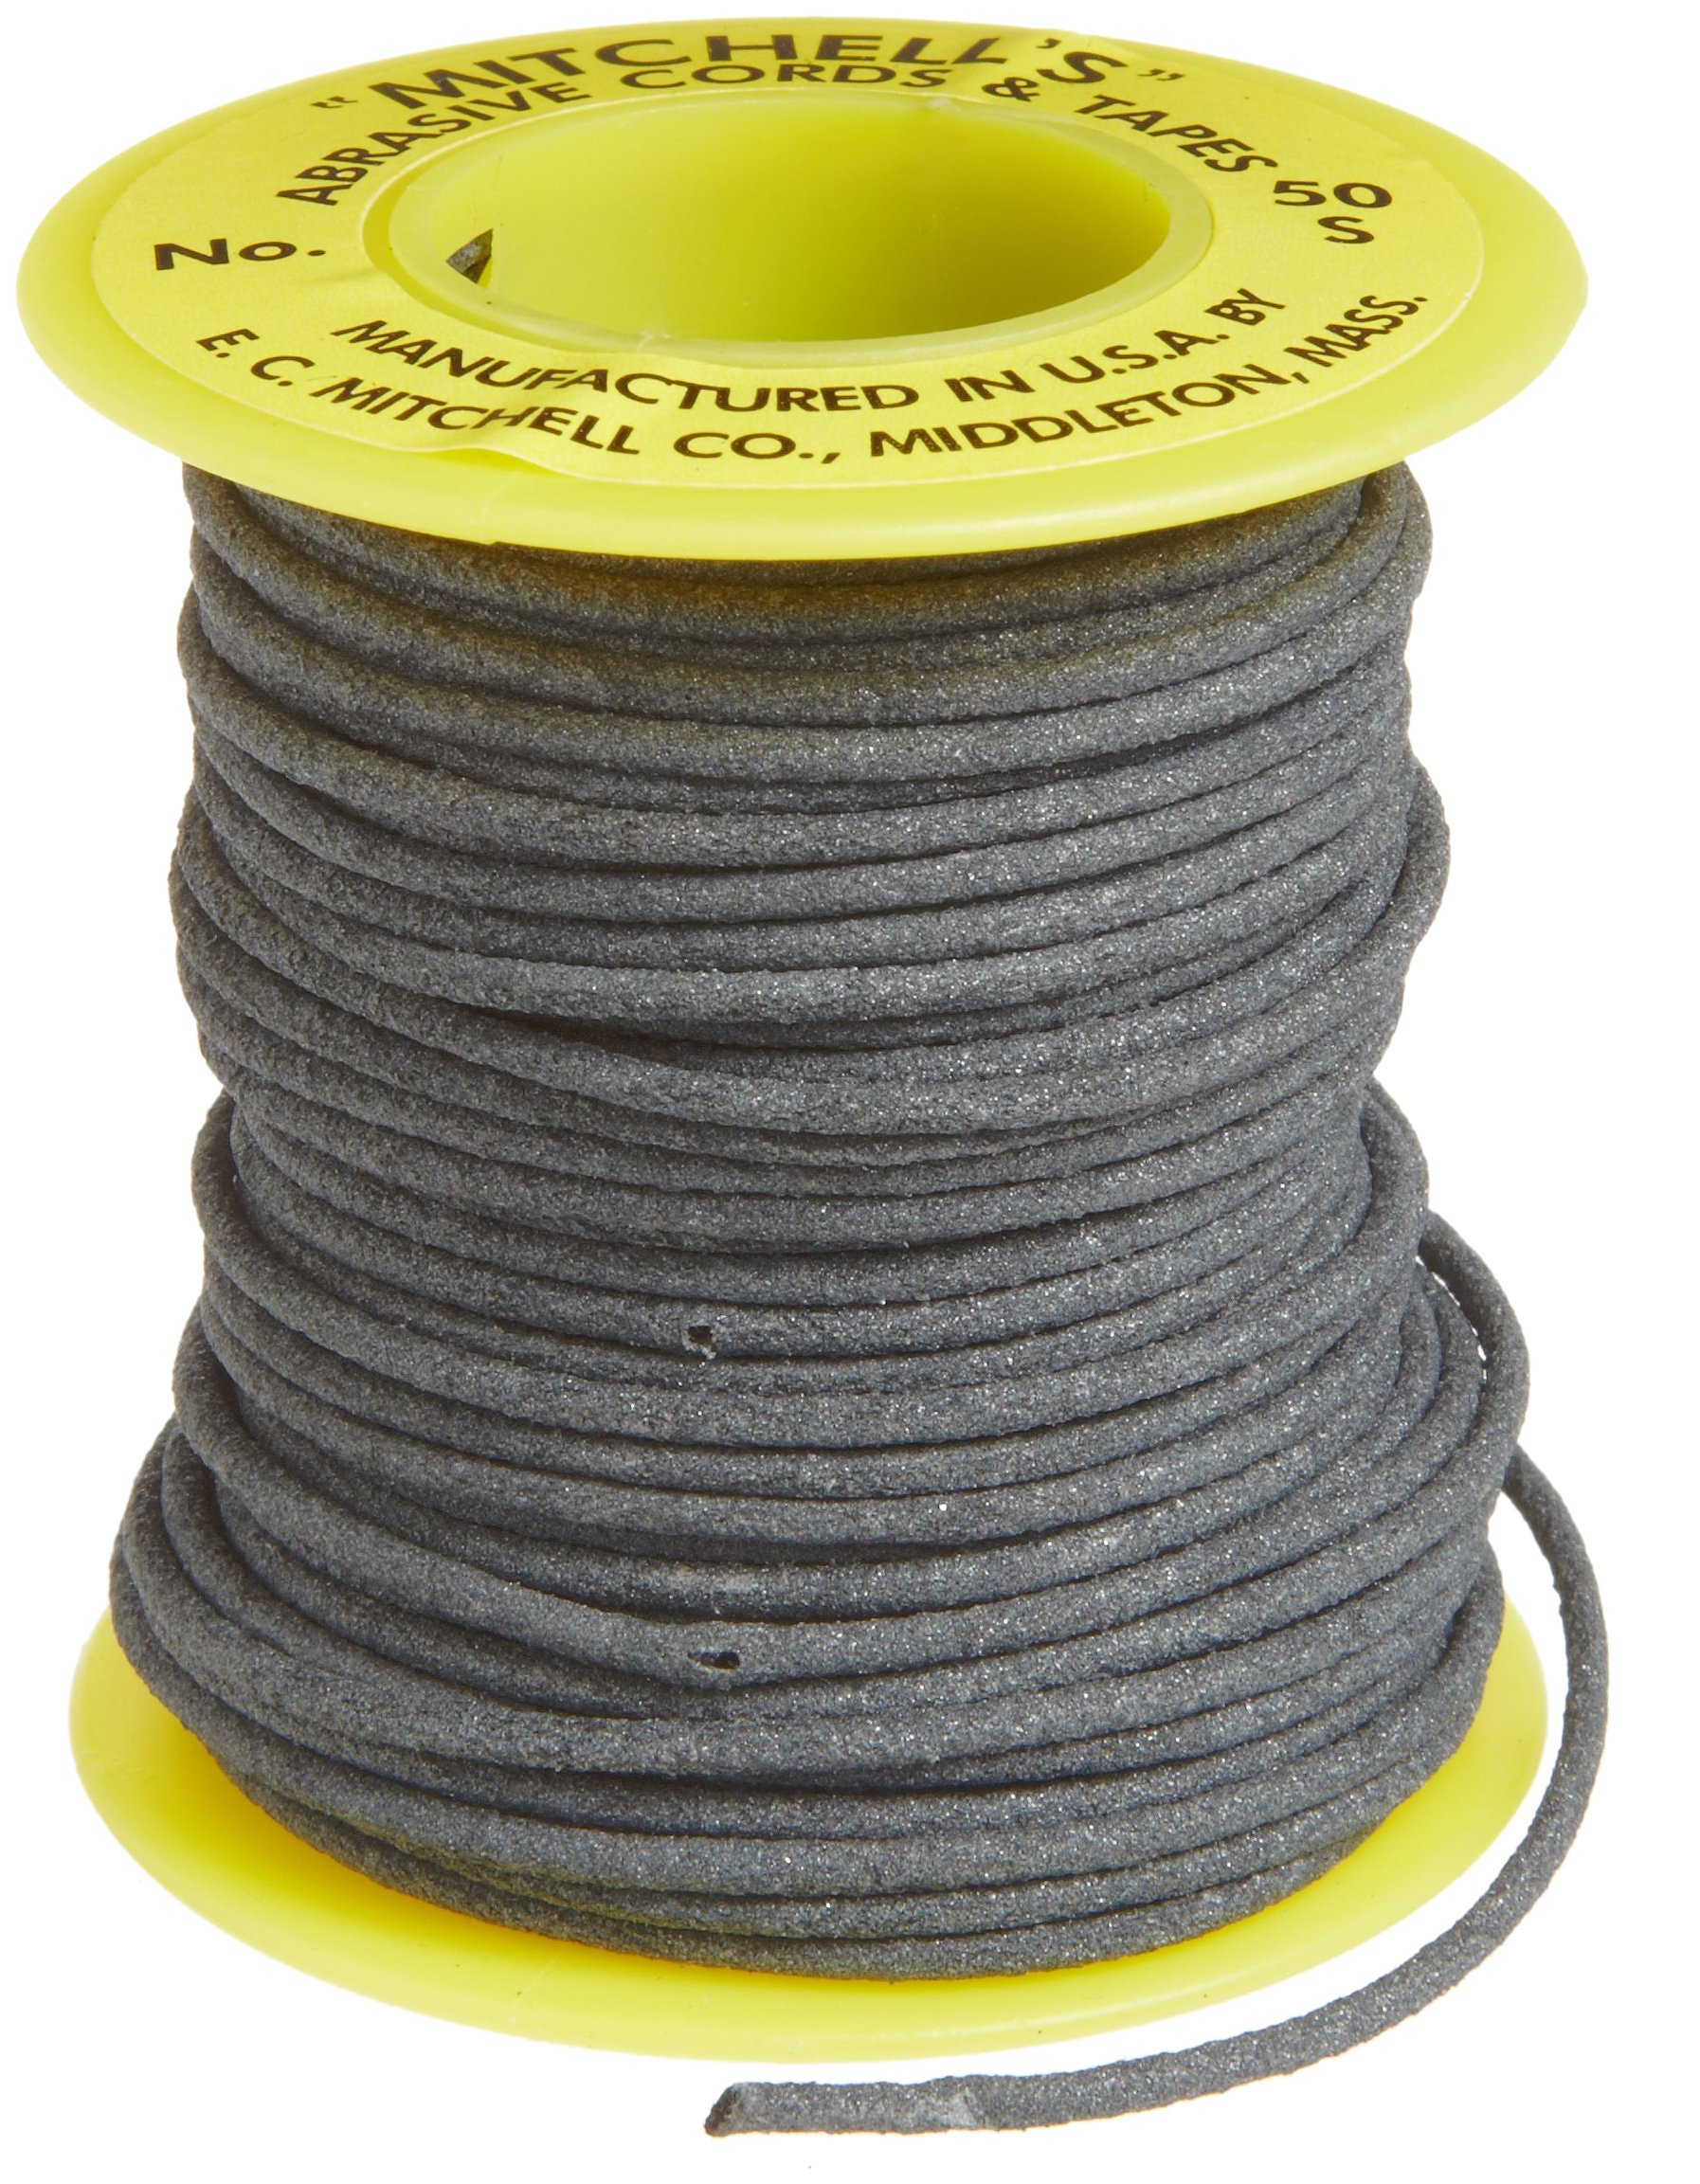 Mitchell Abrasives 50-S Round Abrasive Cord, Silicon Carbide 180 Grit .070'' Diameter x 25 Feet by Mitchell Abrasives